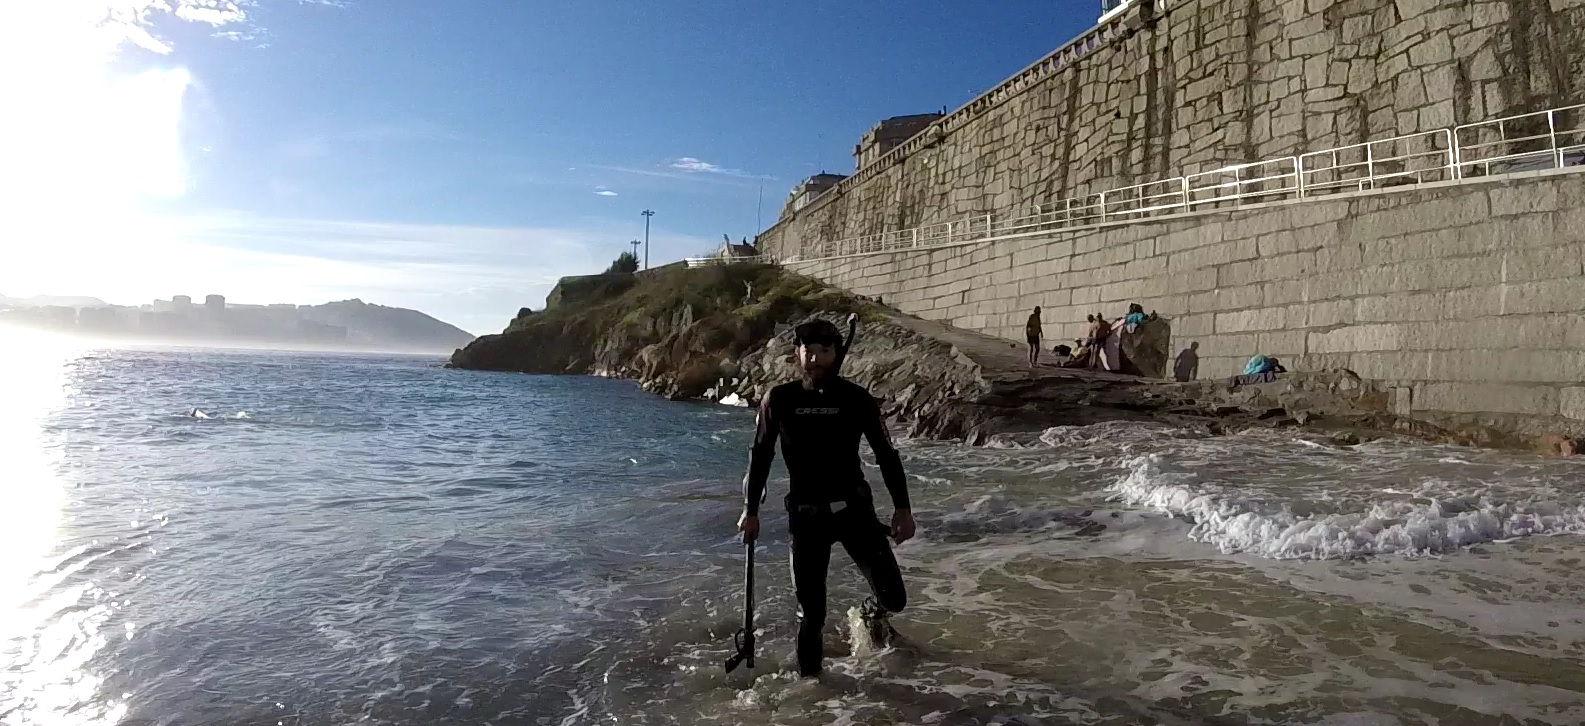 Snorkeling on the big beach in A Coruña